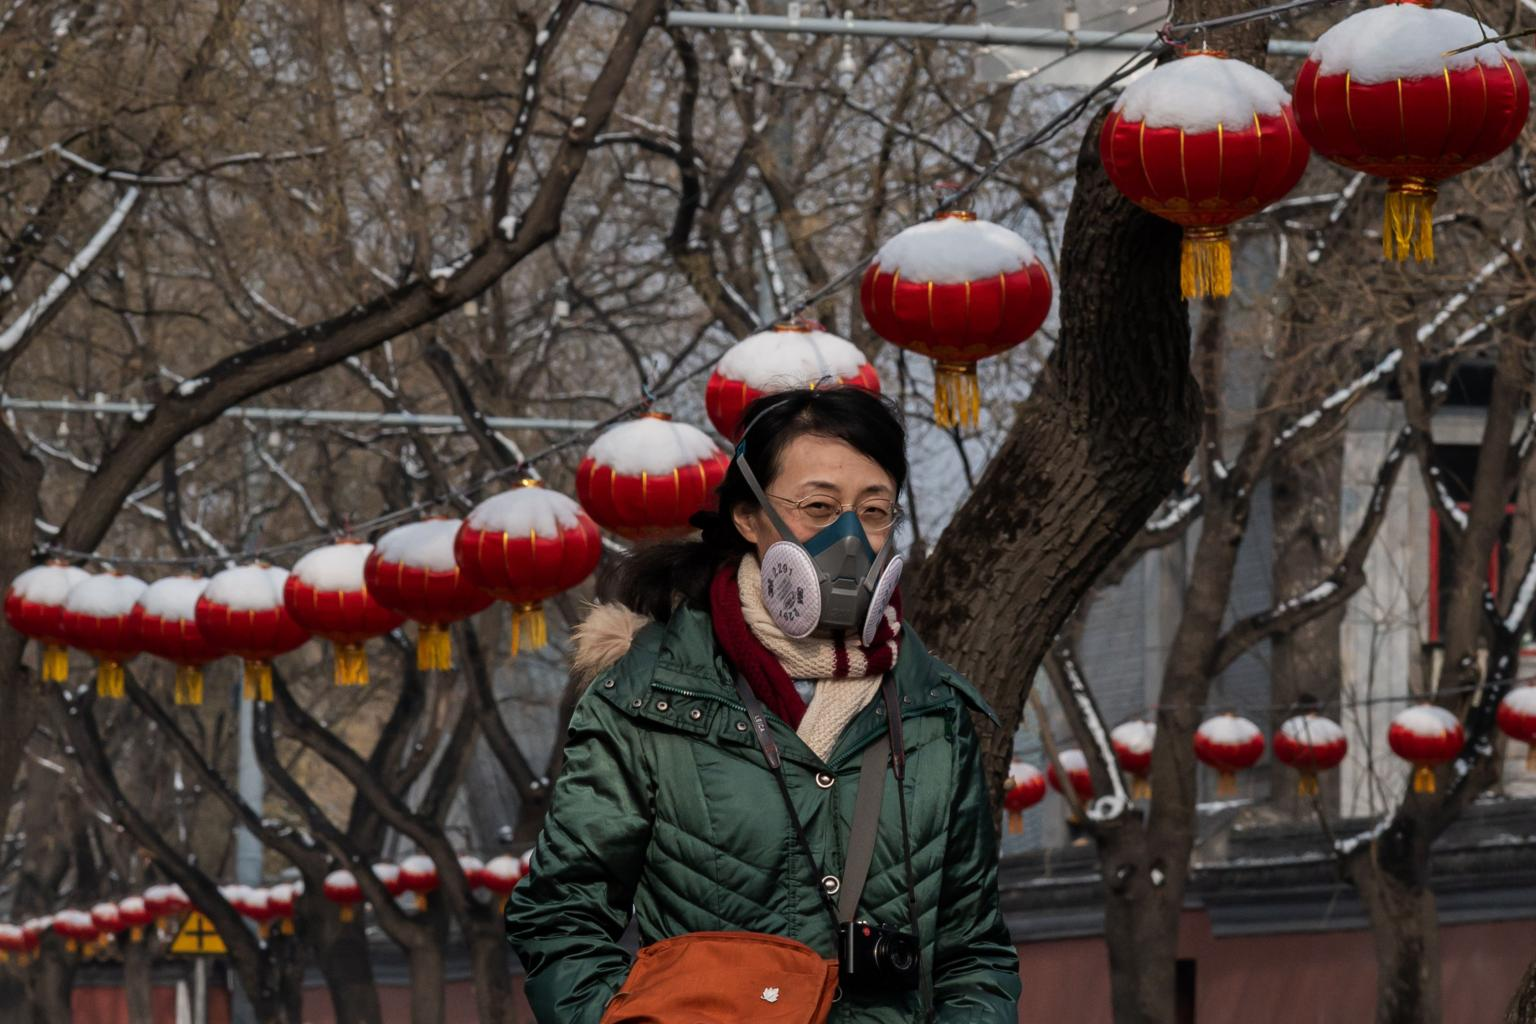 Coronavirus: China to allow in US health experts as virus shows no sign of slowing